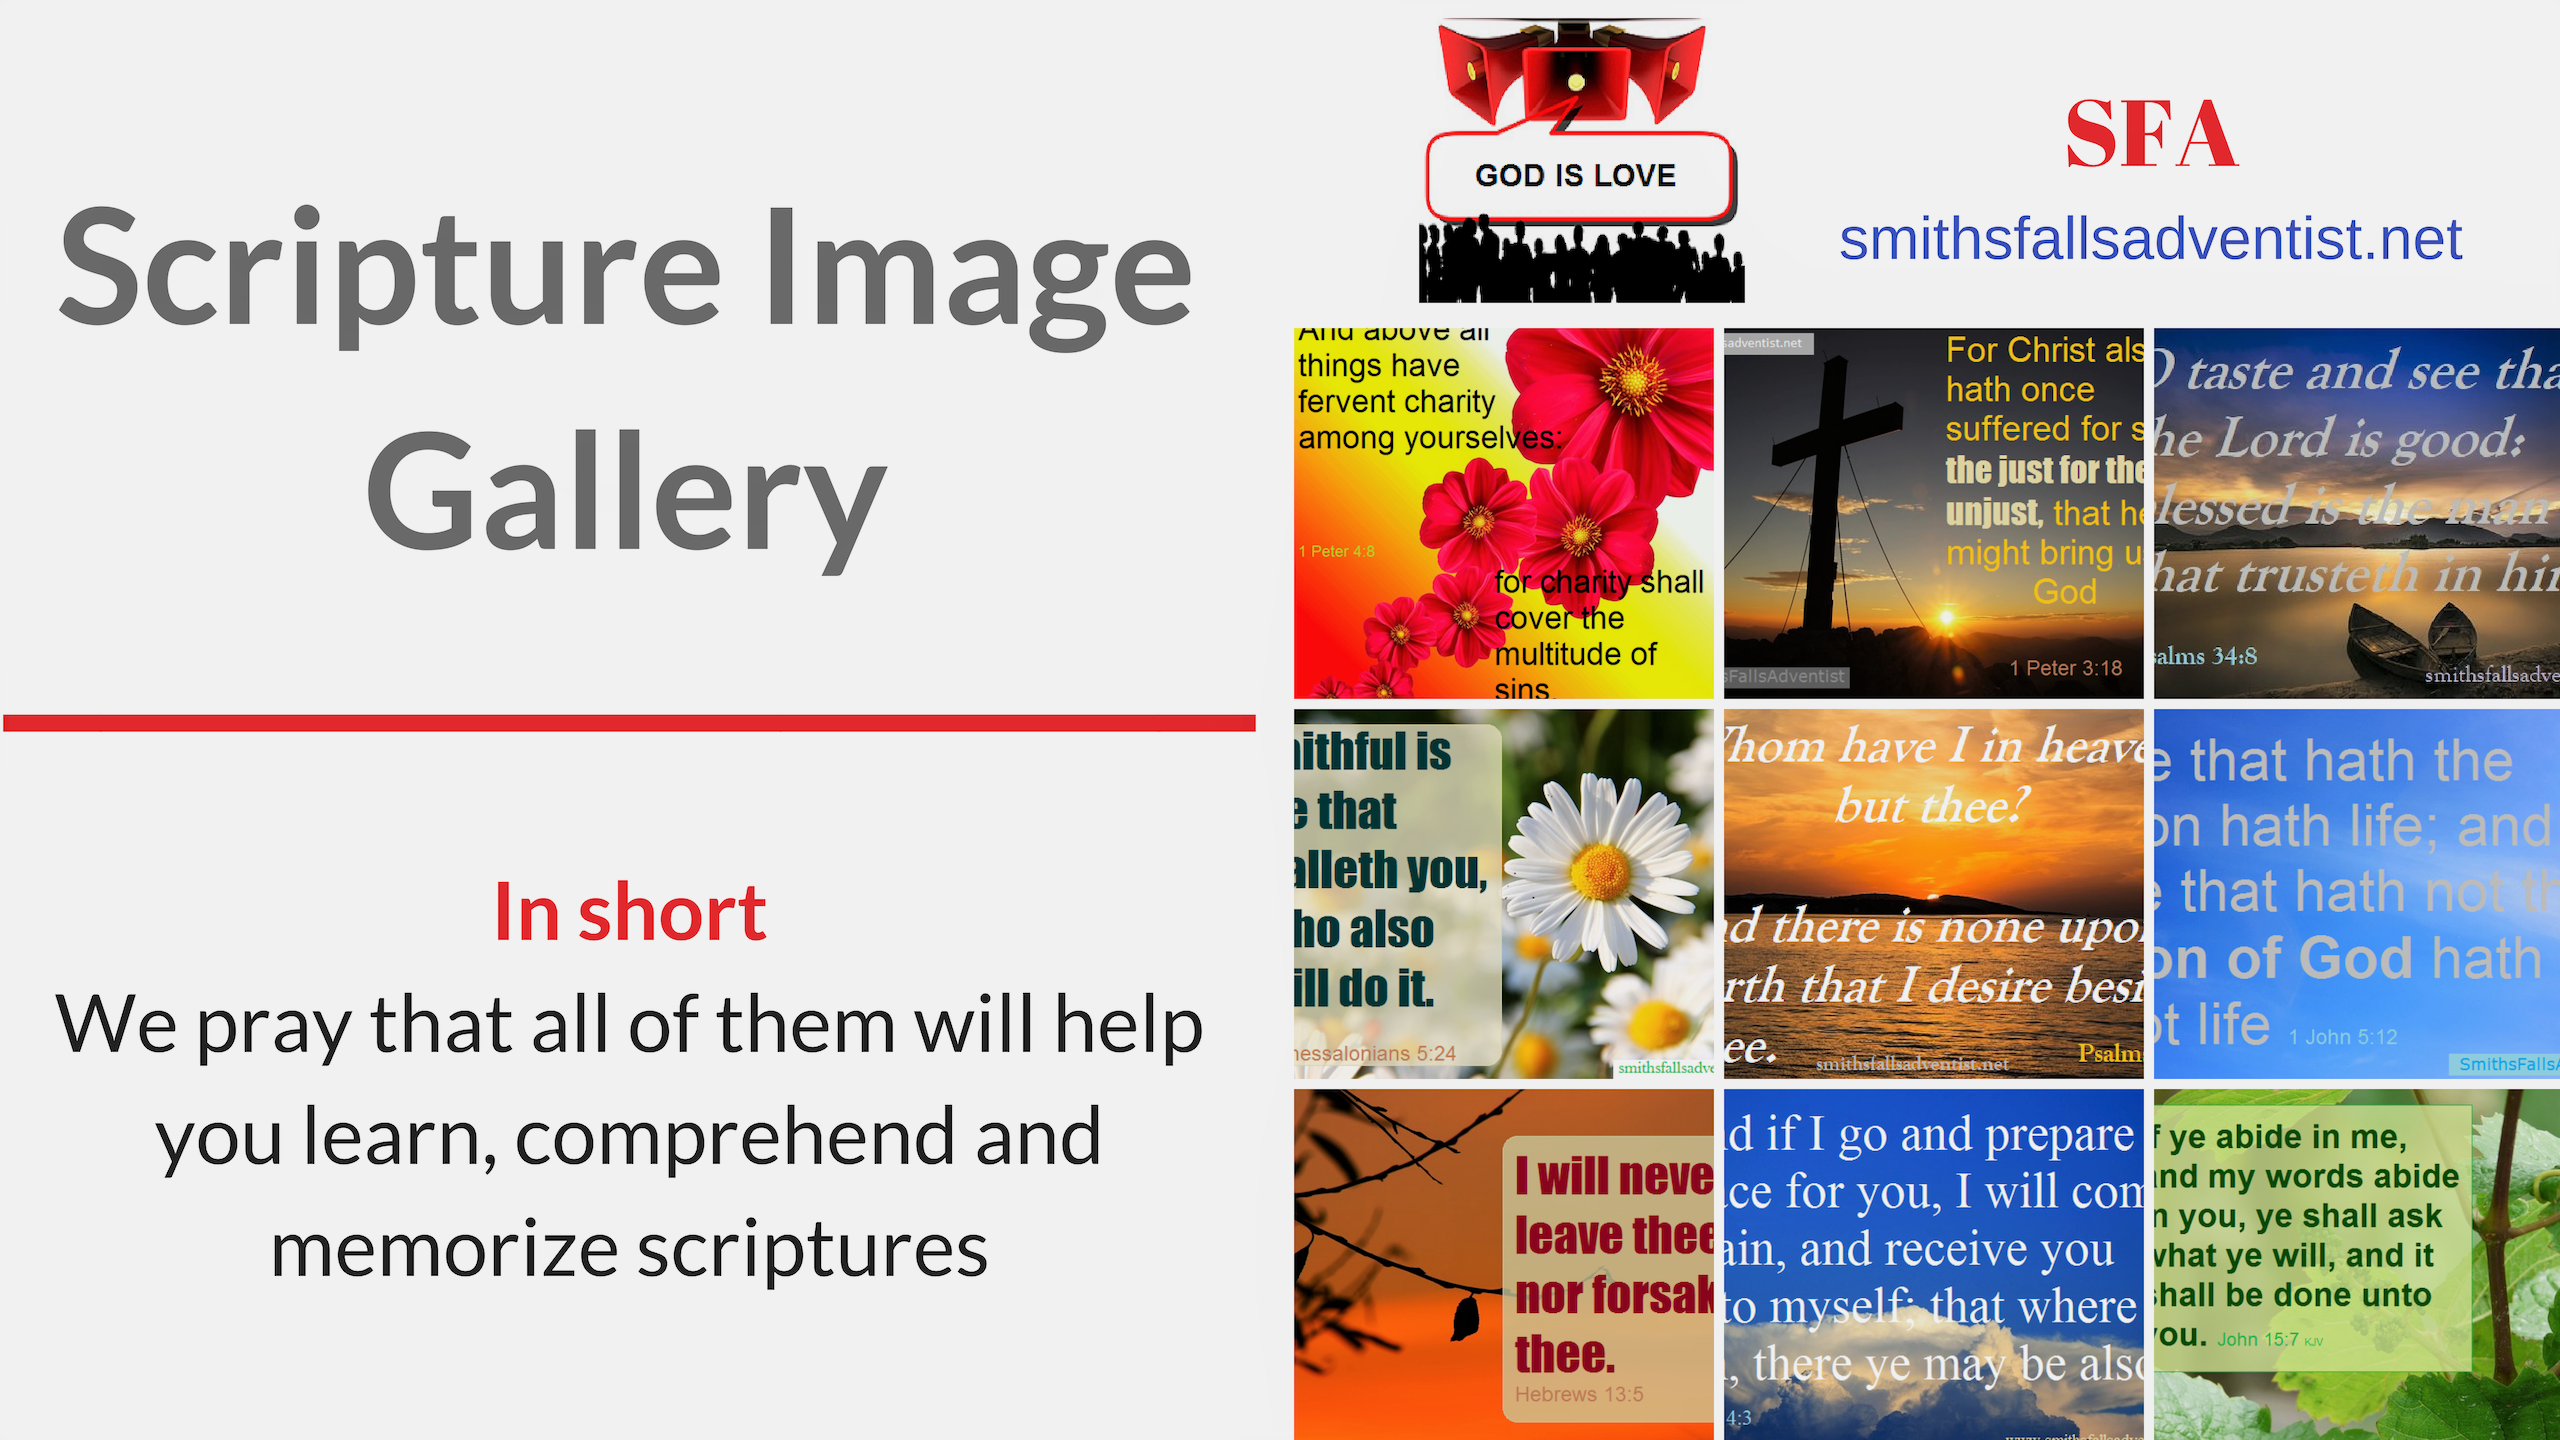 Title-Scripture-Image-Gallery-text-logo